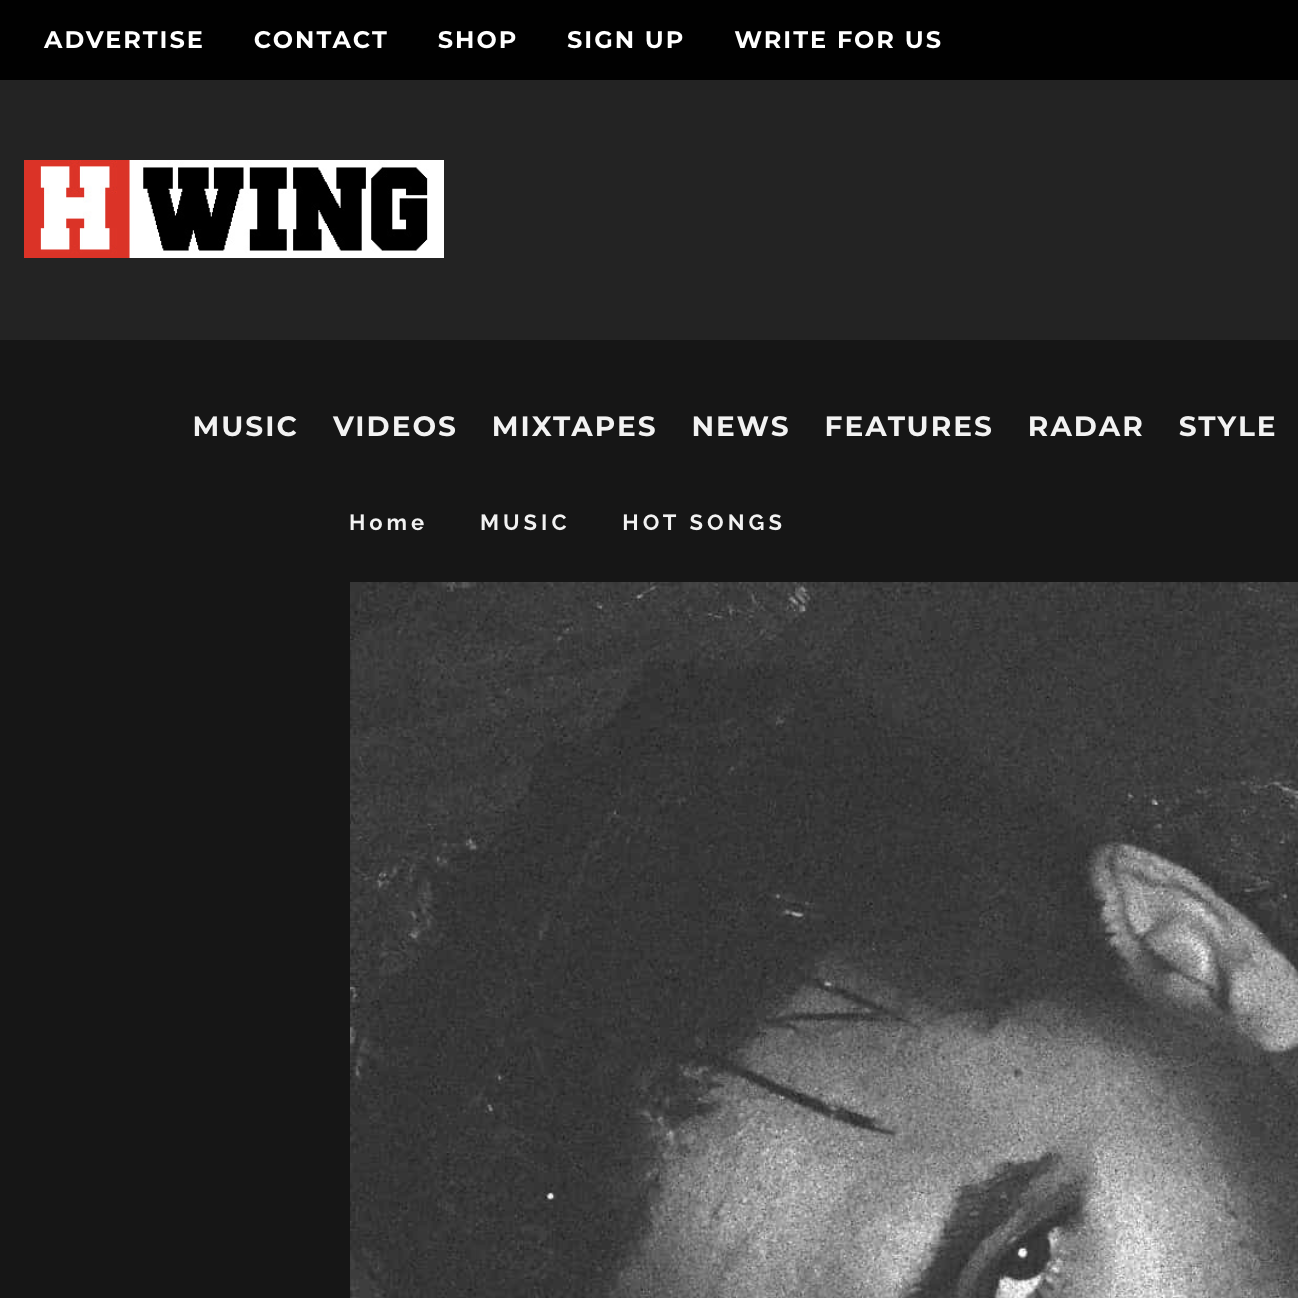 HWING - August 14th 2018